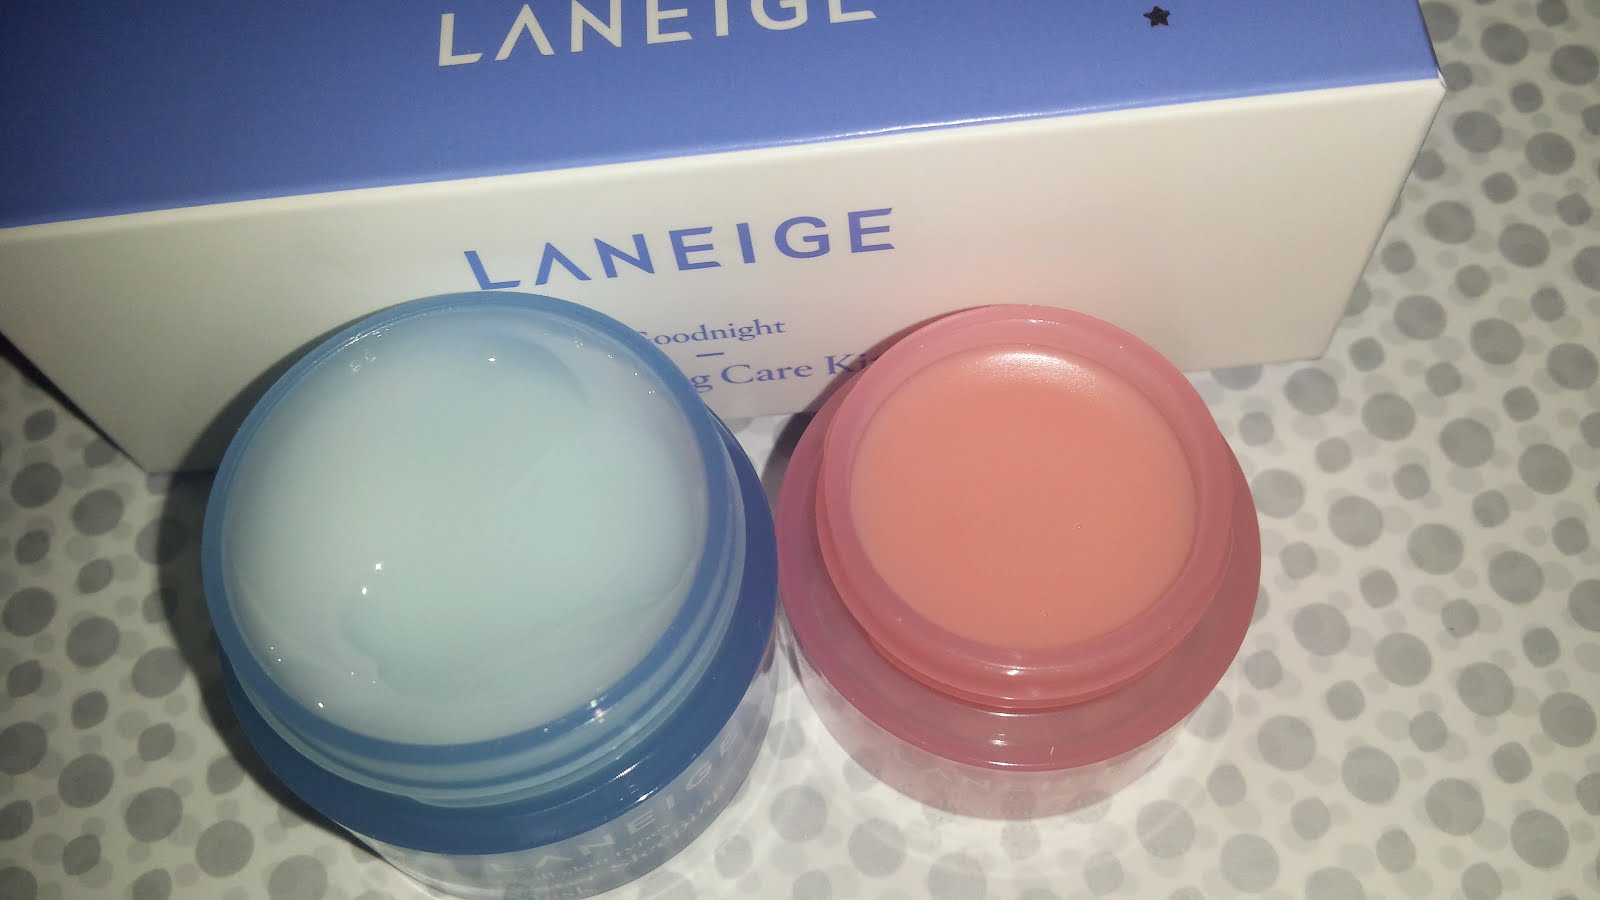 Review laniege goodnight sleeping care kit laniege water laneige water sleeping mask review altavistaventures Images